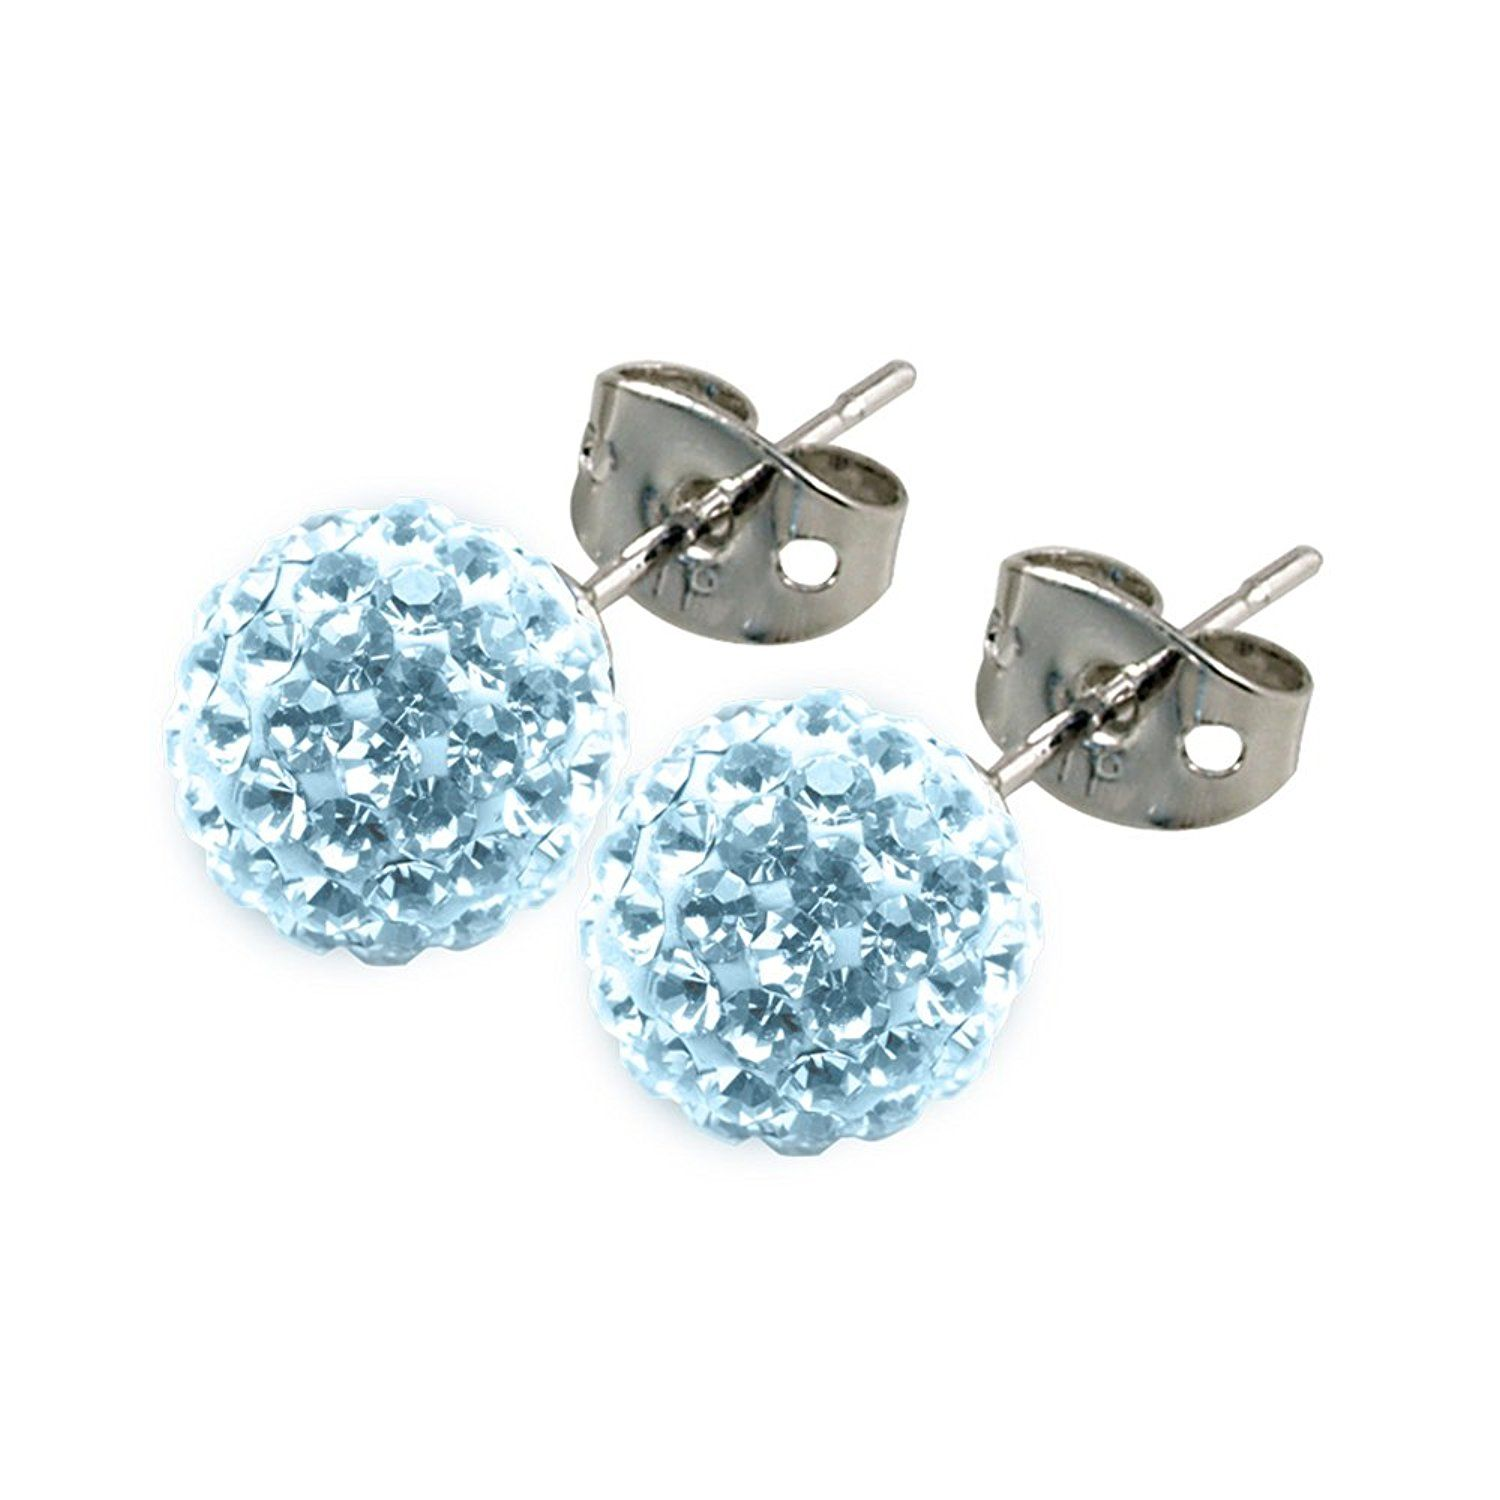 Donnay Tresor Paris Stud Earrings Light Blue 8mm Crystal Allergy Safe Anium